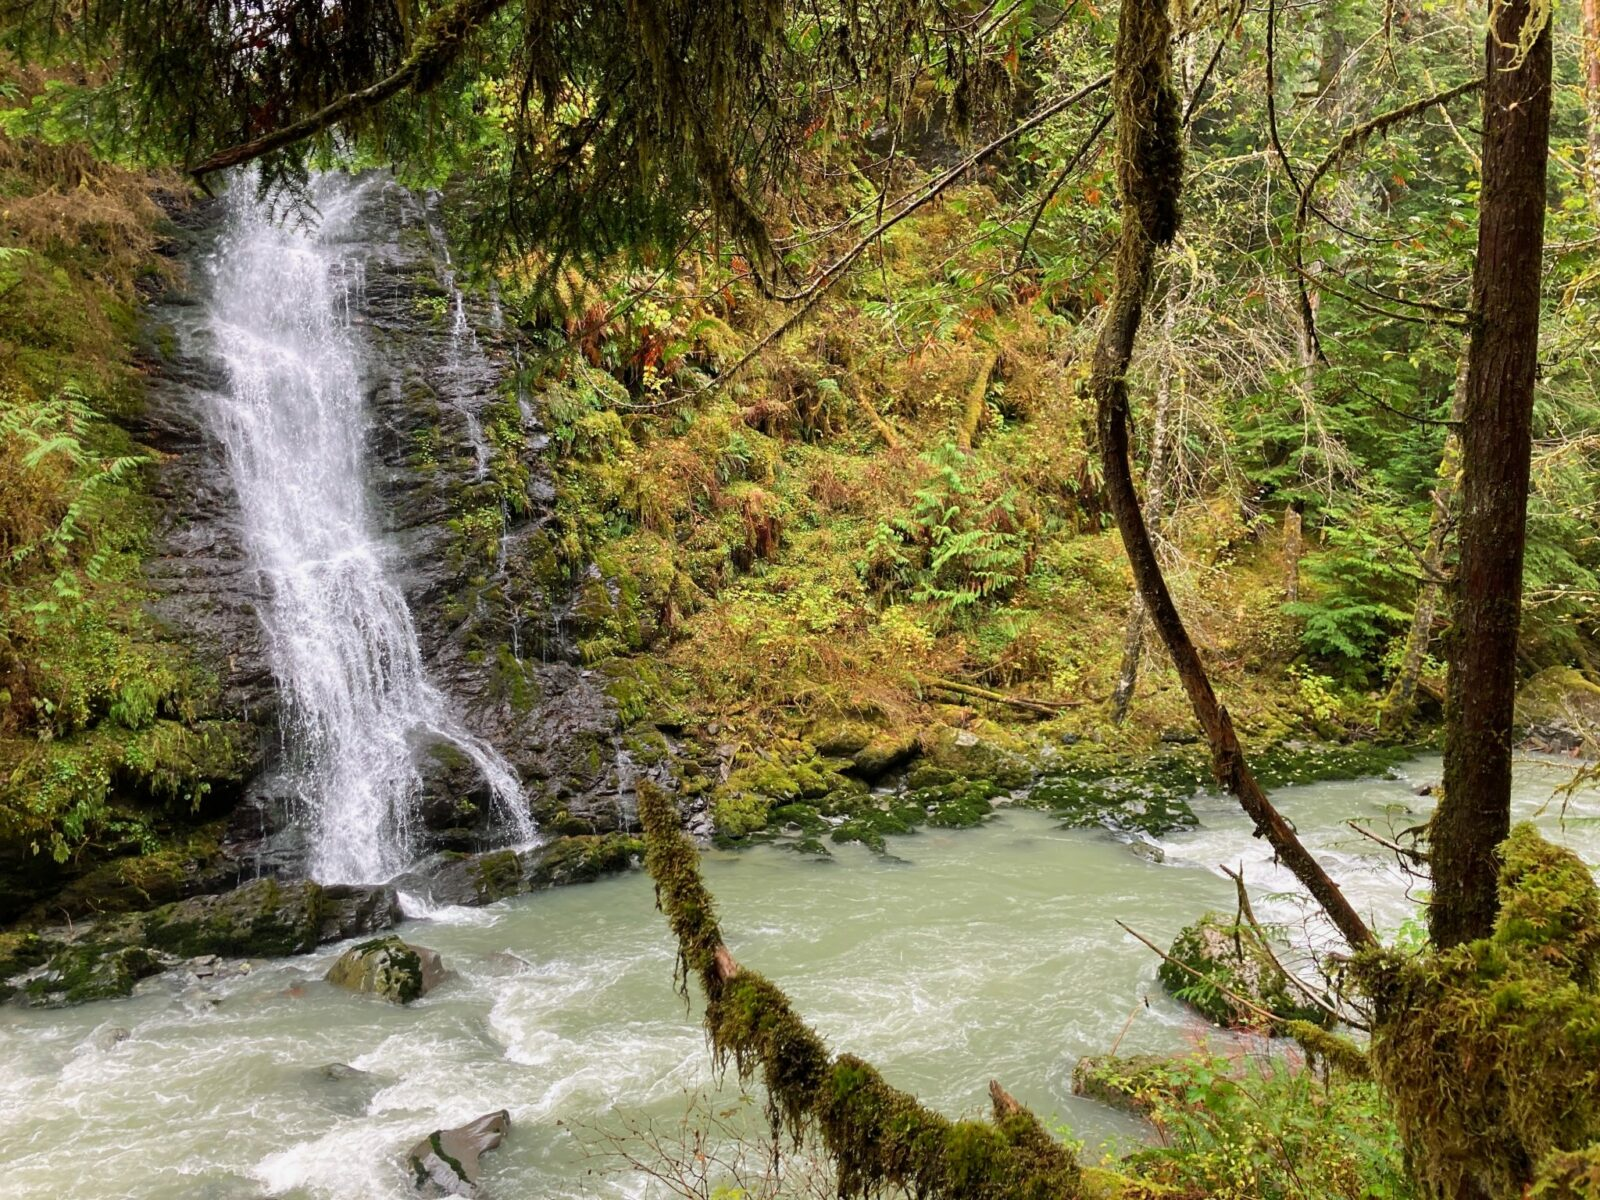 A waterfall coming down between ferns and moss into a rushing milky colored river.